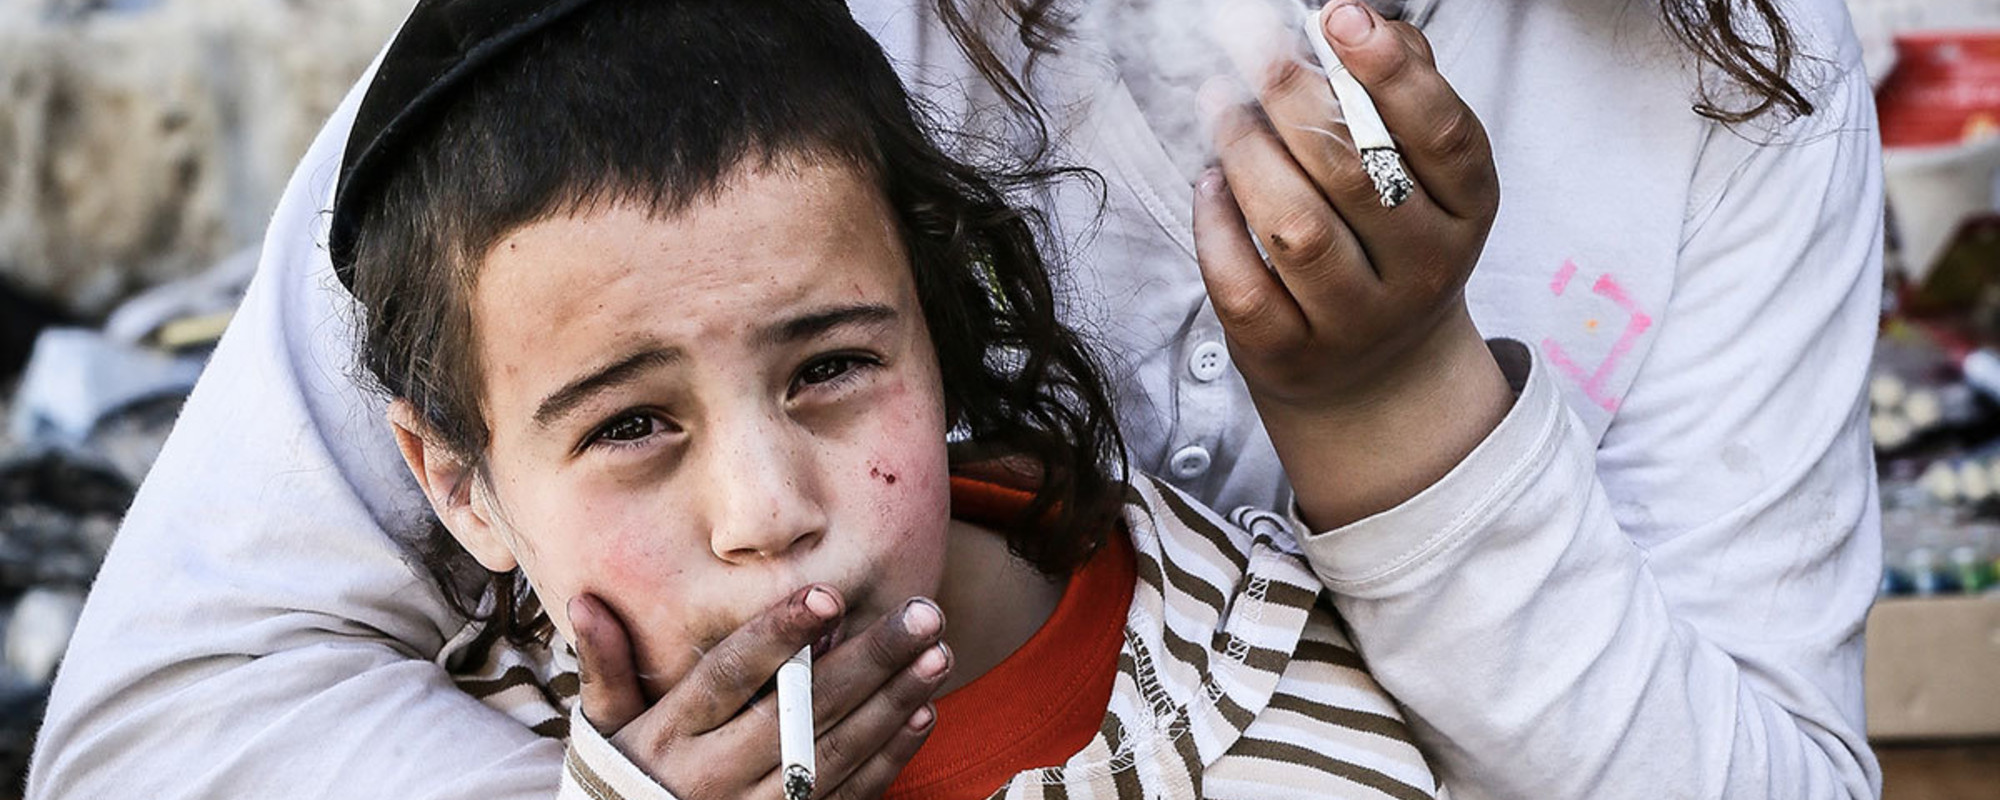 Kids in Jerusalem Celebrated Purim by Smoking Tons of Cigarettes